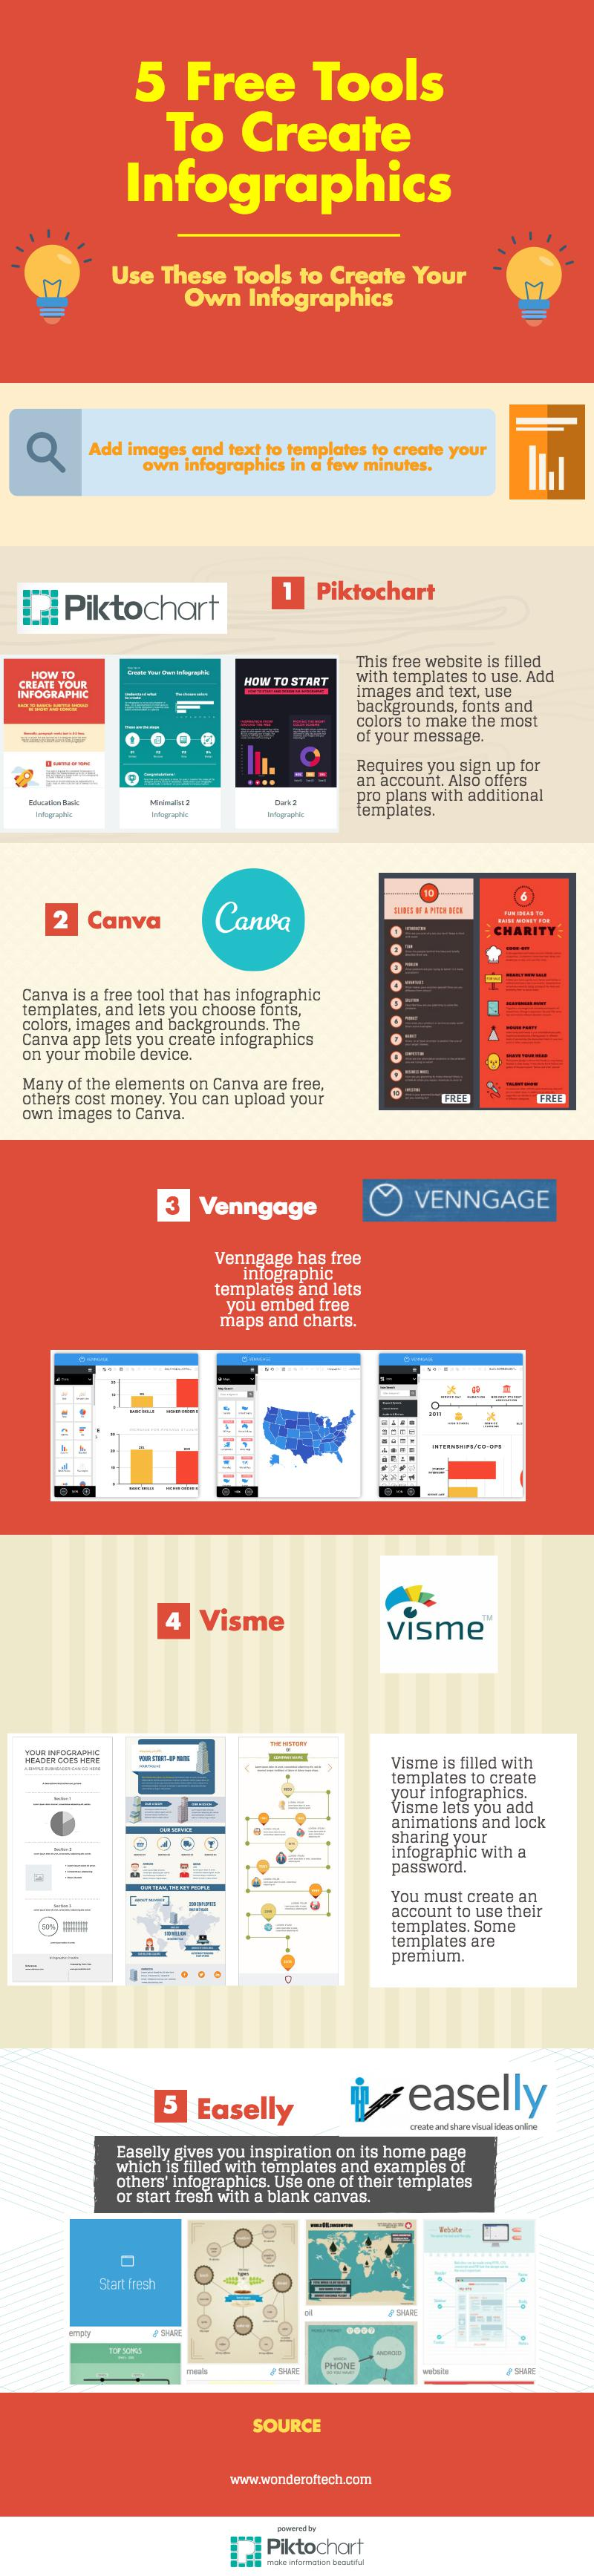 Use these free sites to create your own infographics quickly and easily.